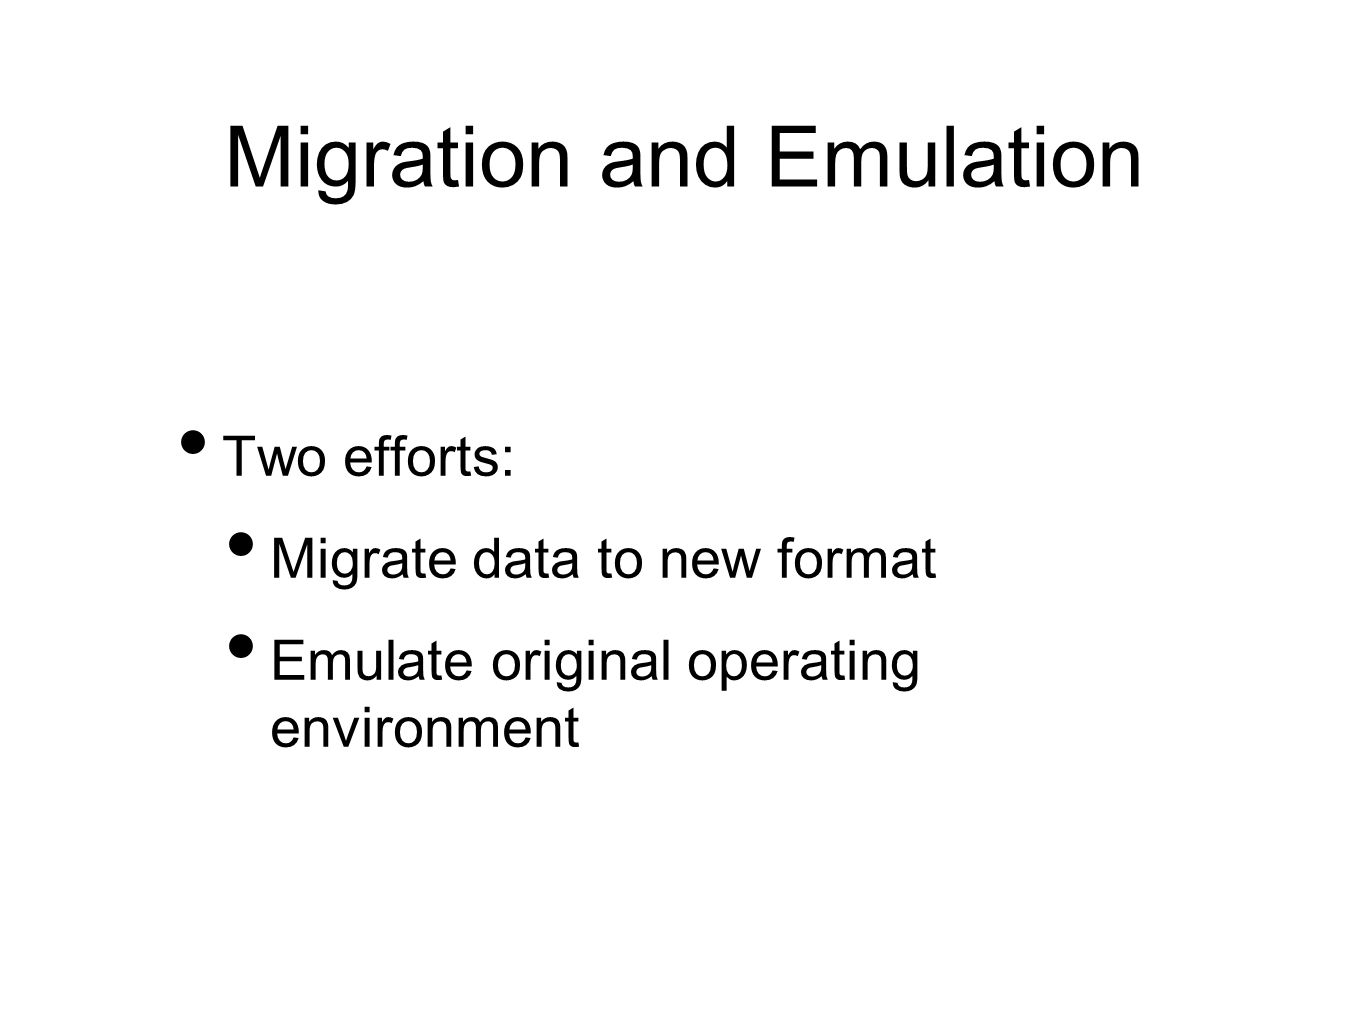 Migration and Emulation Two efforts: Migrate data to new format Emulate original operating environment